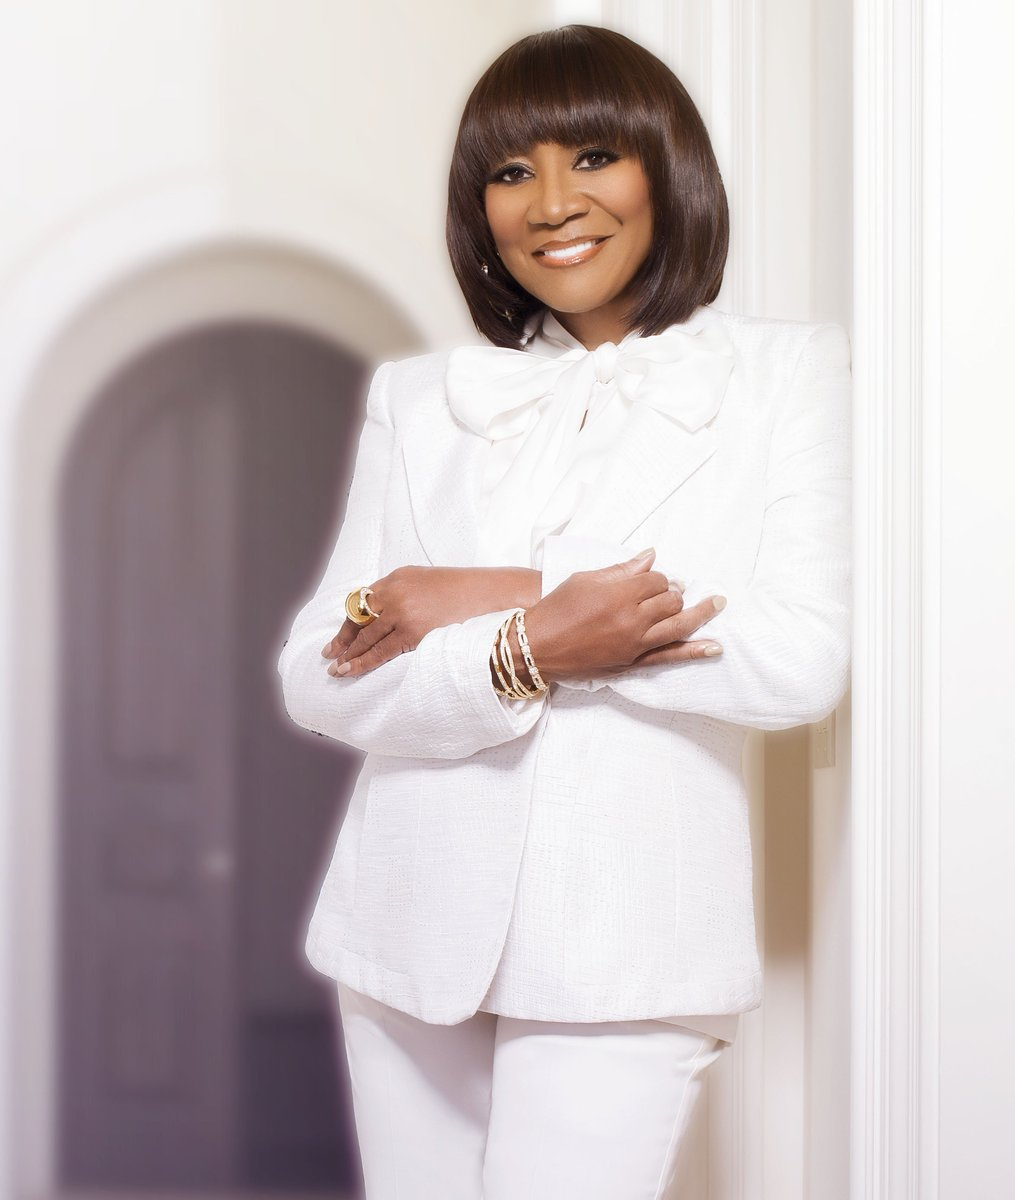 Beautiful simply does not describe the incomparable force known to the world as @MsPattiPatti. Don't miss her at The Cowlitz Ballroom on 2/28! http://bit.ly/2DLVhh2